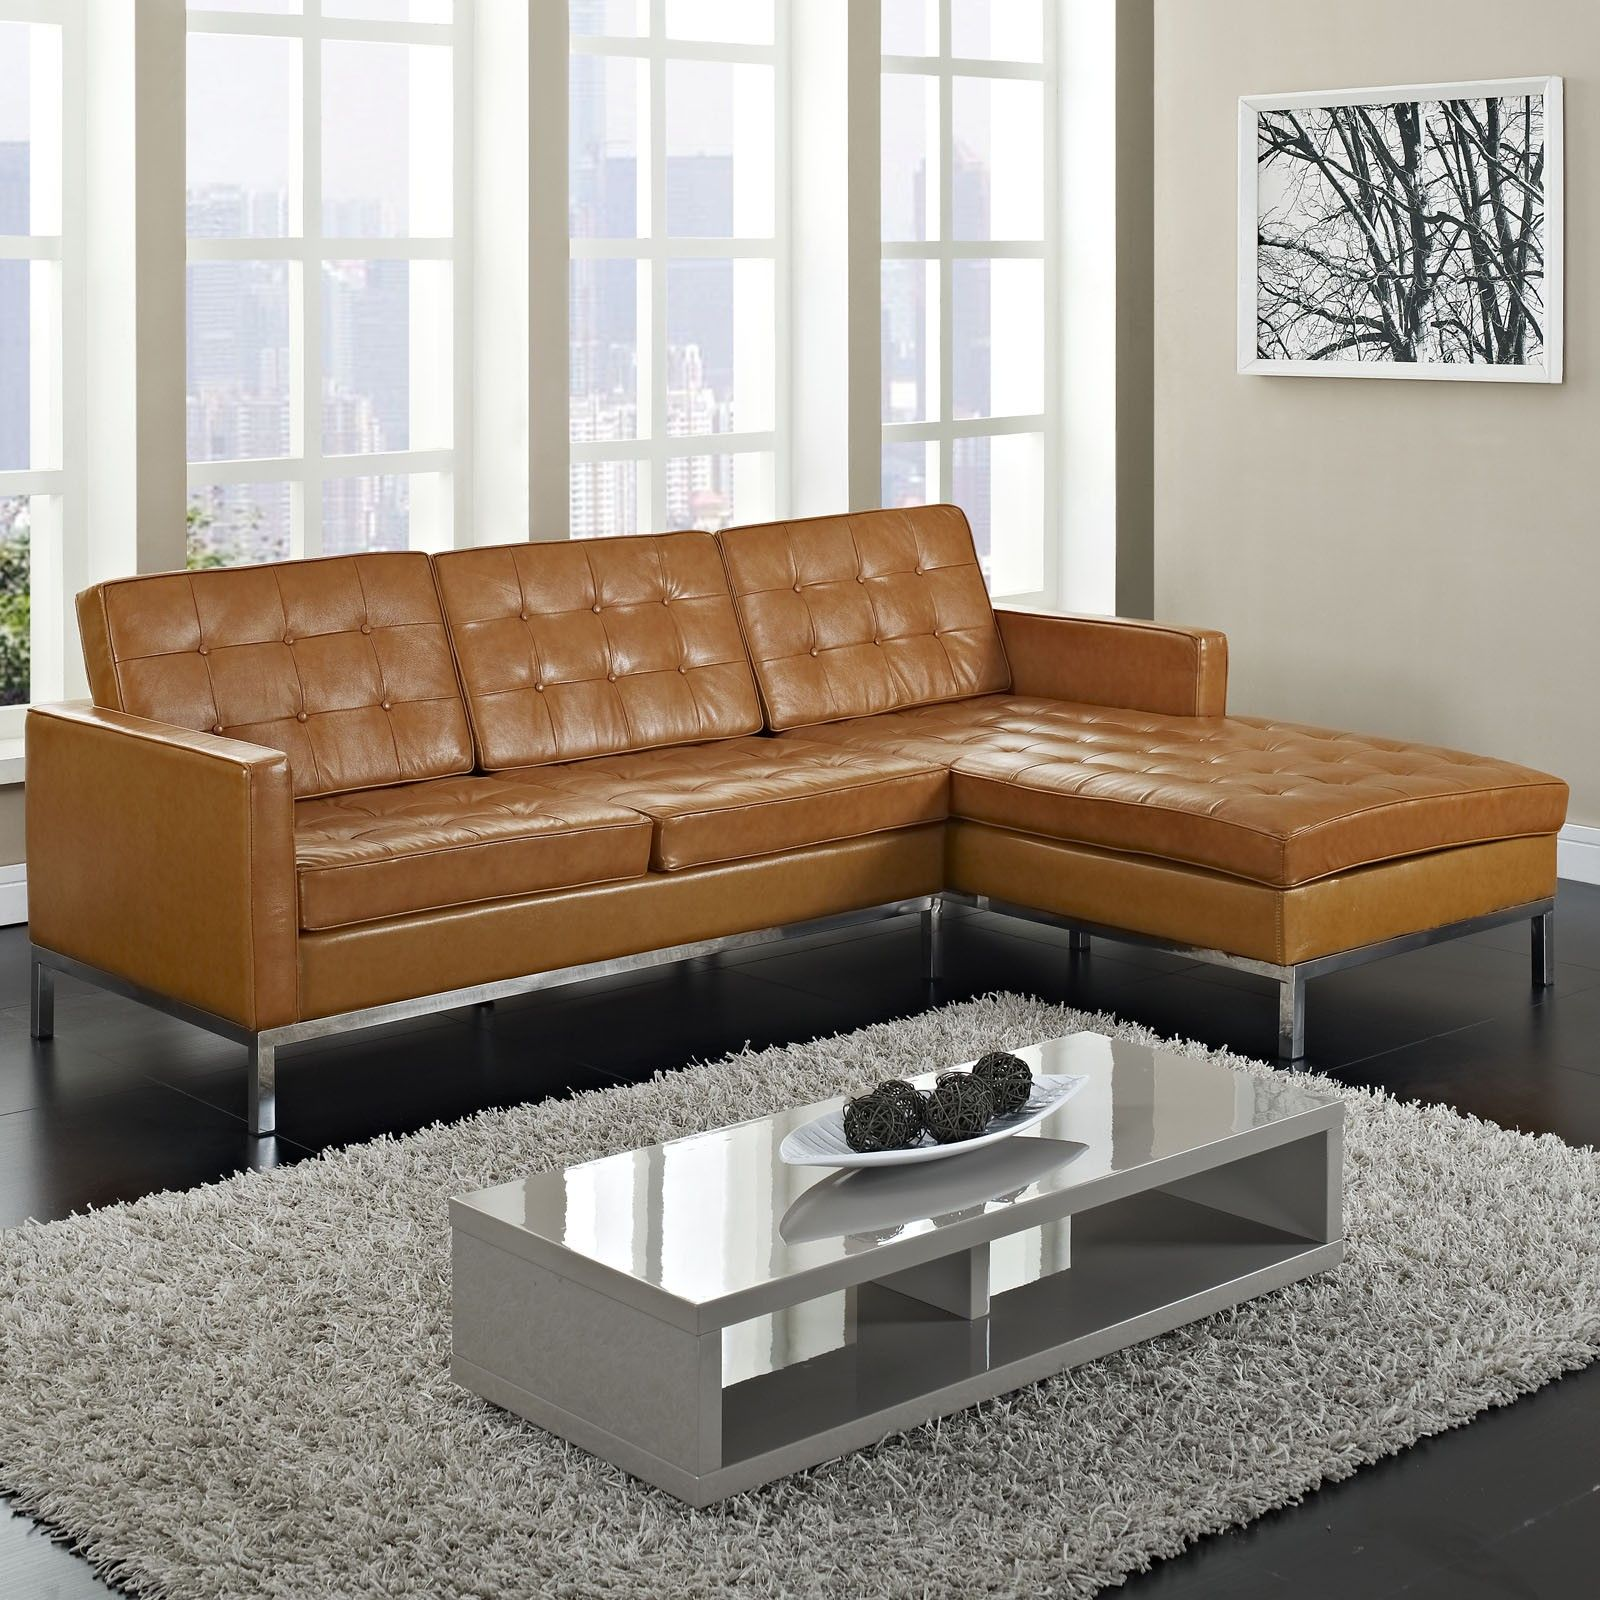 Furniture maximizing small living room spaces with 3 piece brown leather tufted sectional sofa with